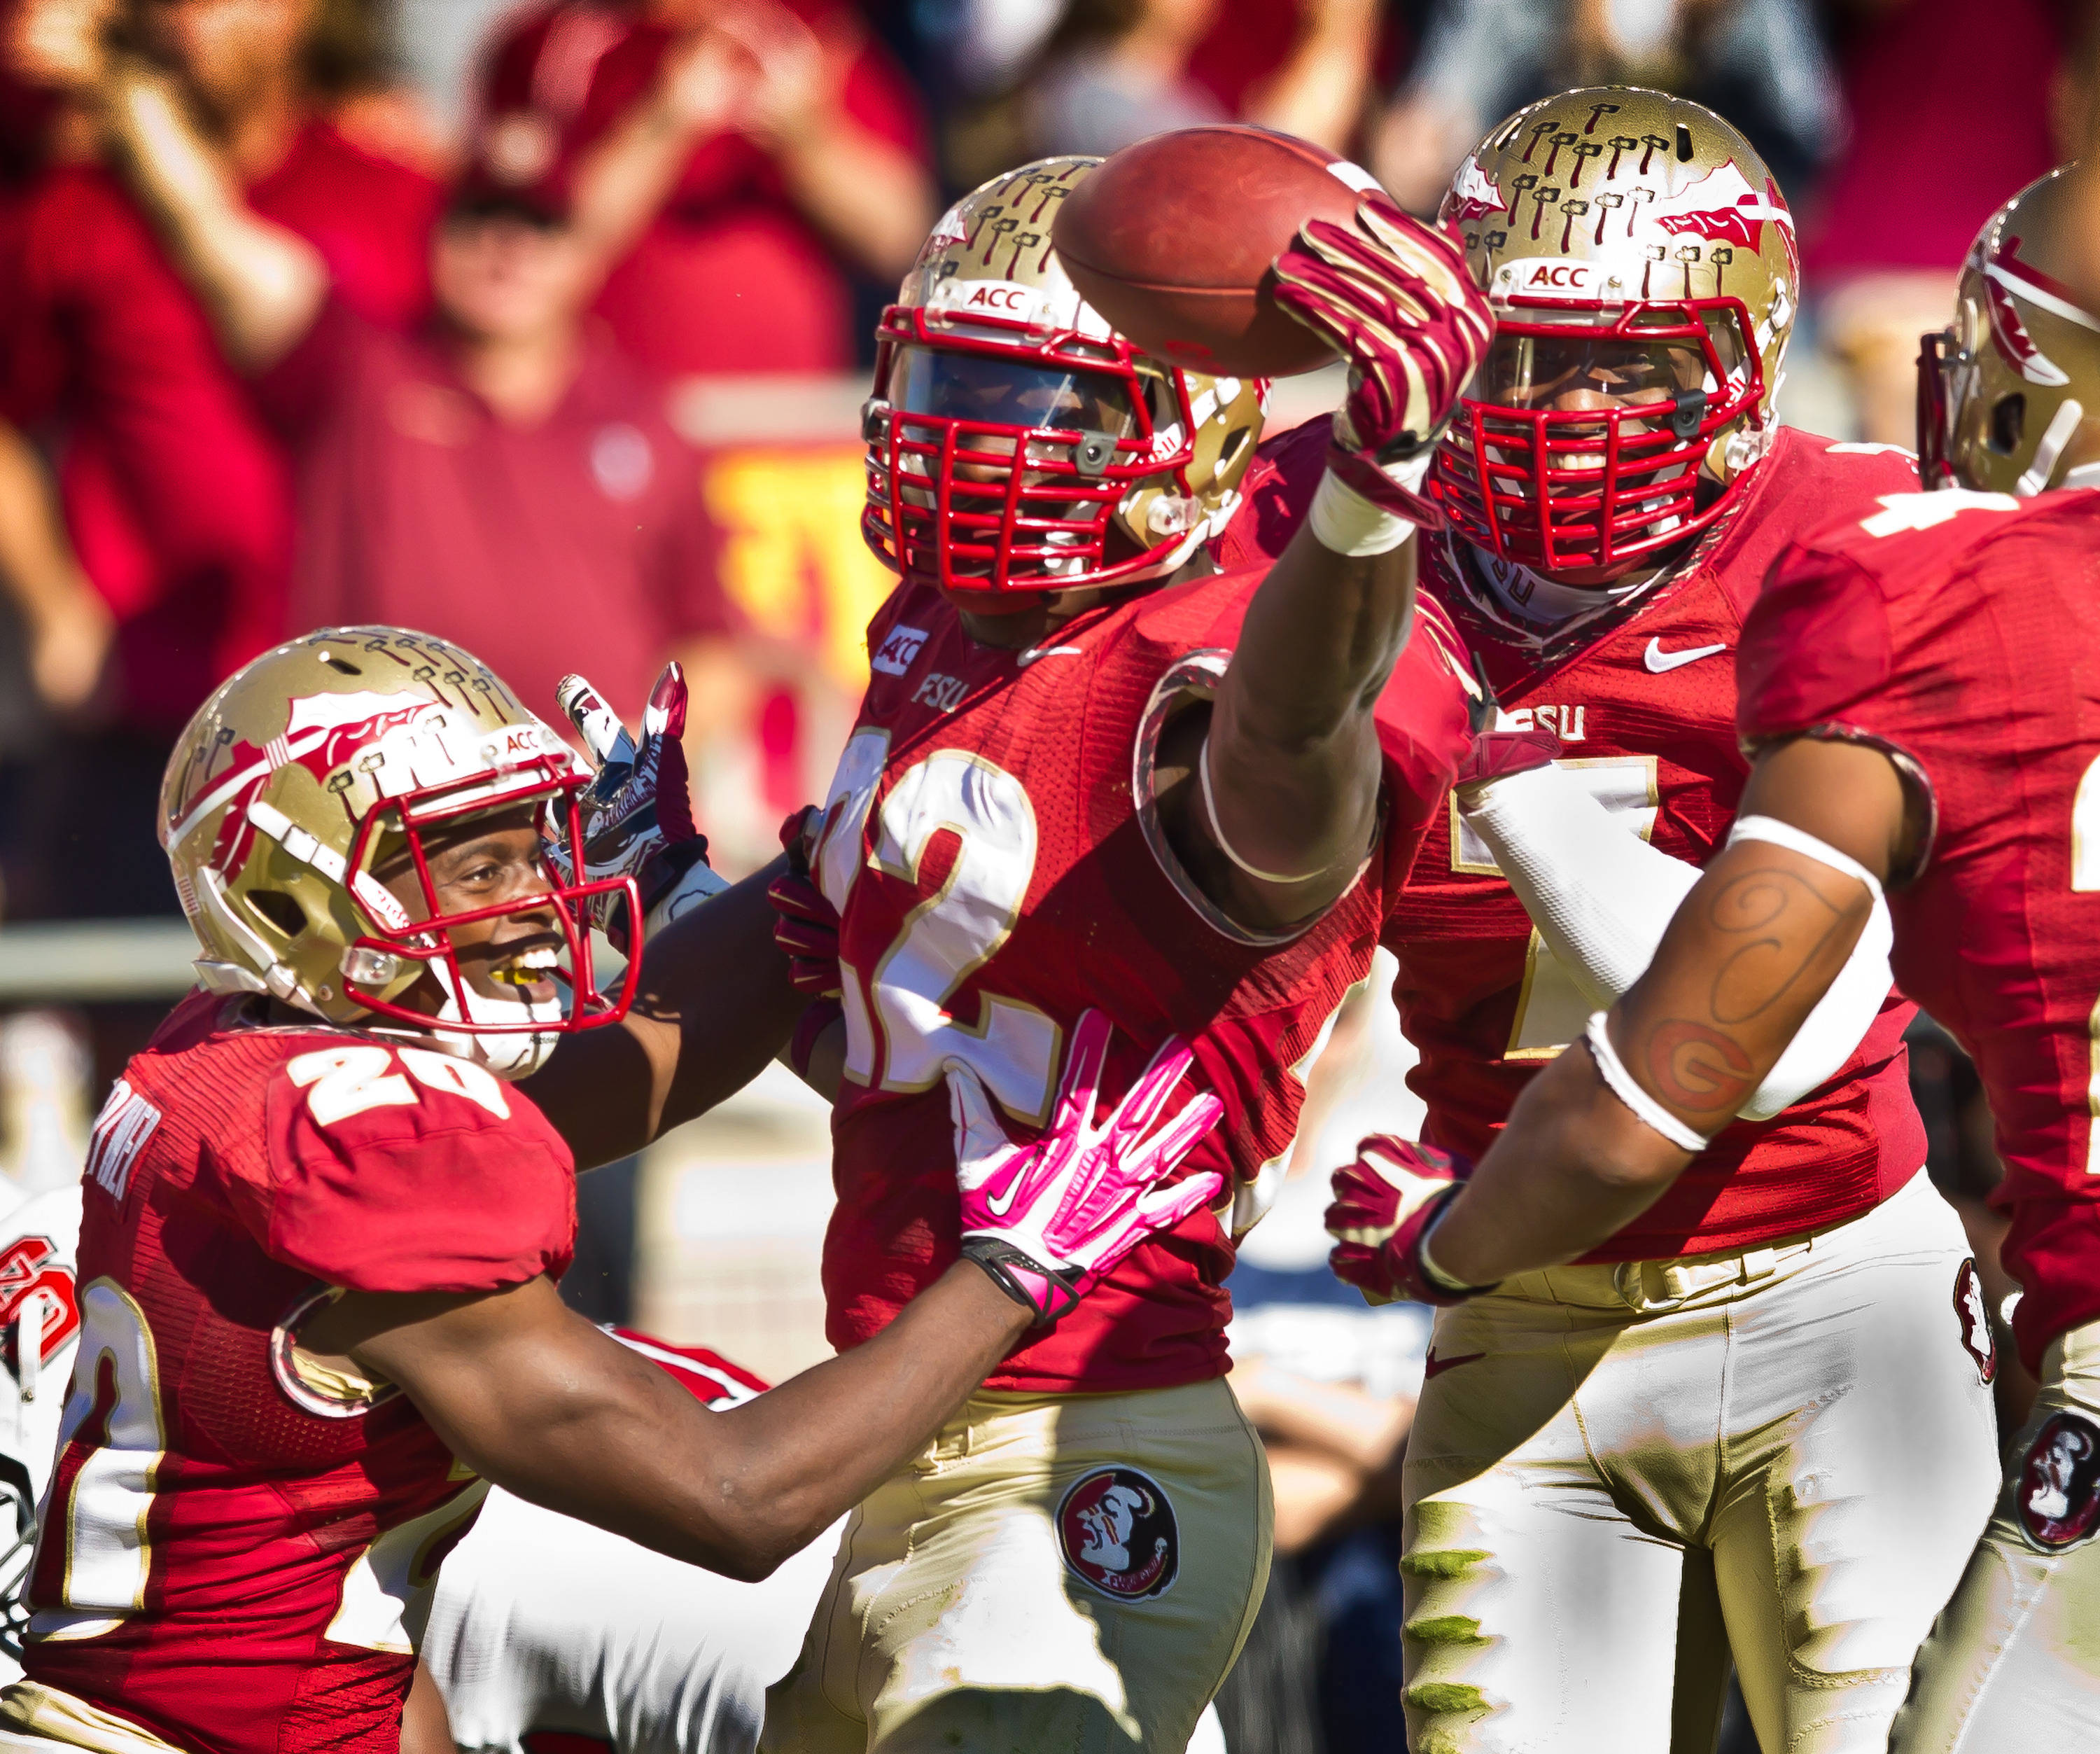 Lamarcus Joyner (20), Telvin Smith (22), and Christian Jones (7) celebrate Smith's fumble recovery against N.C. State.